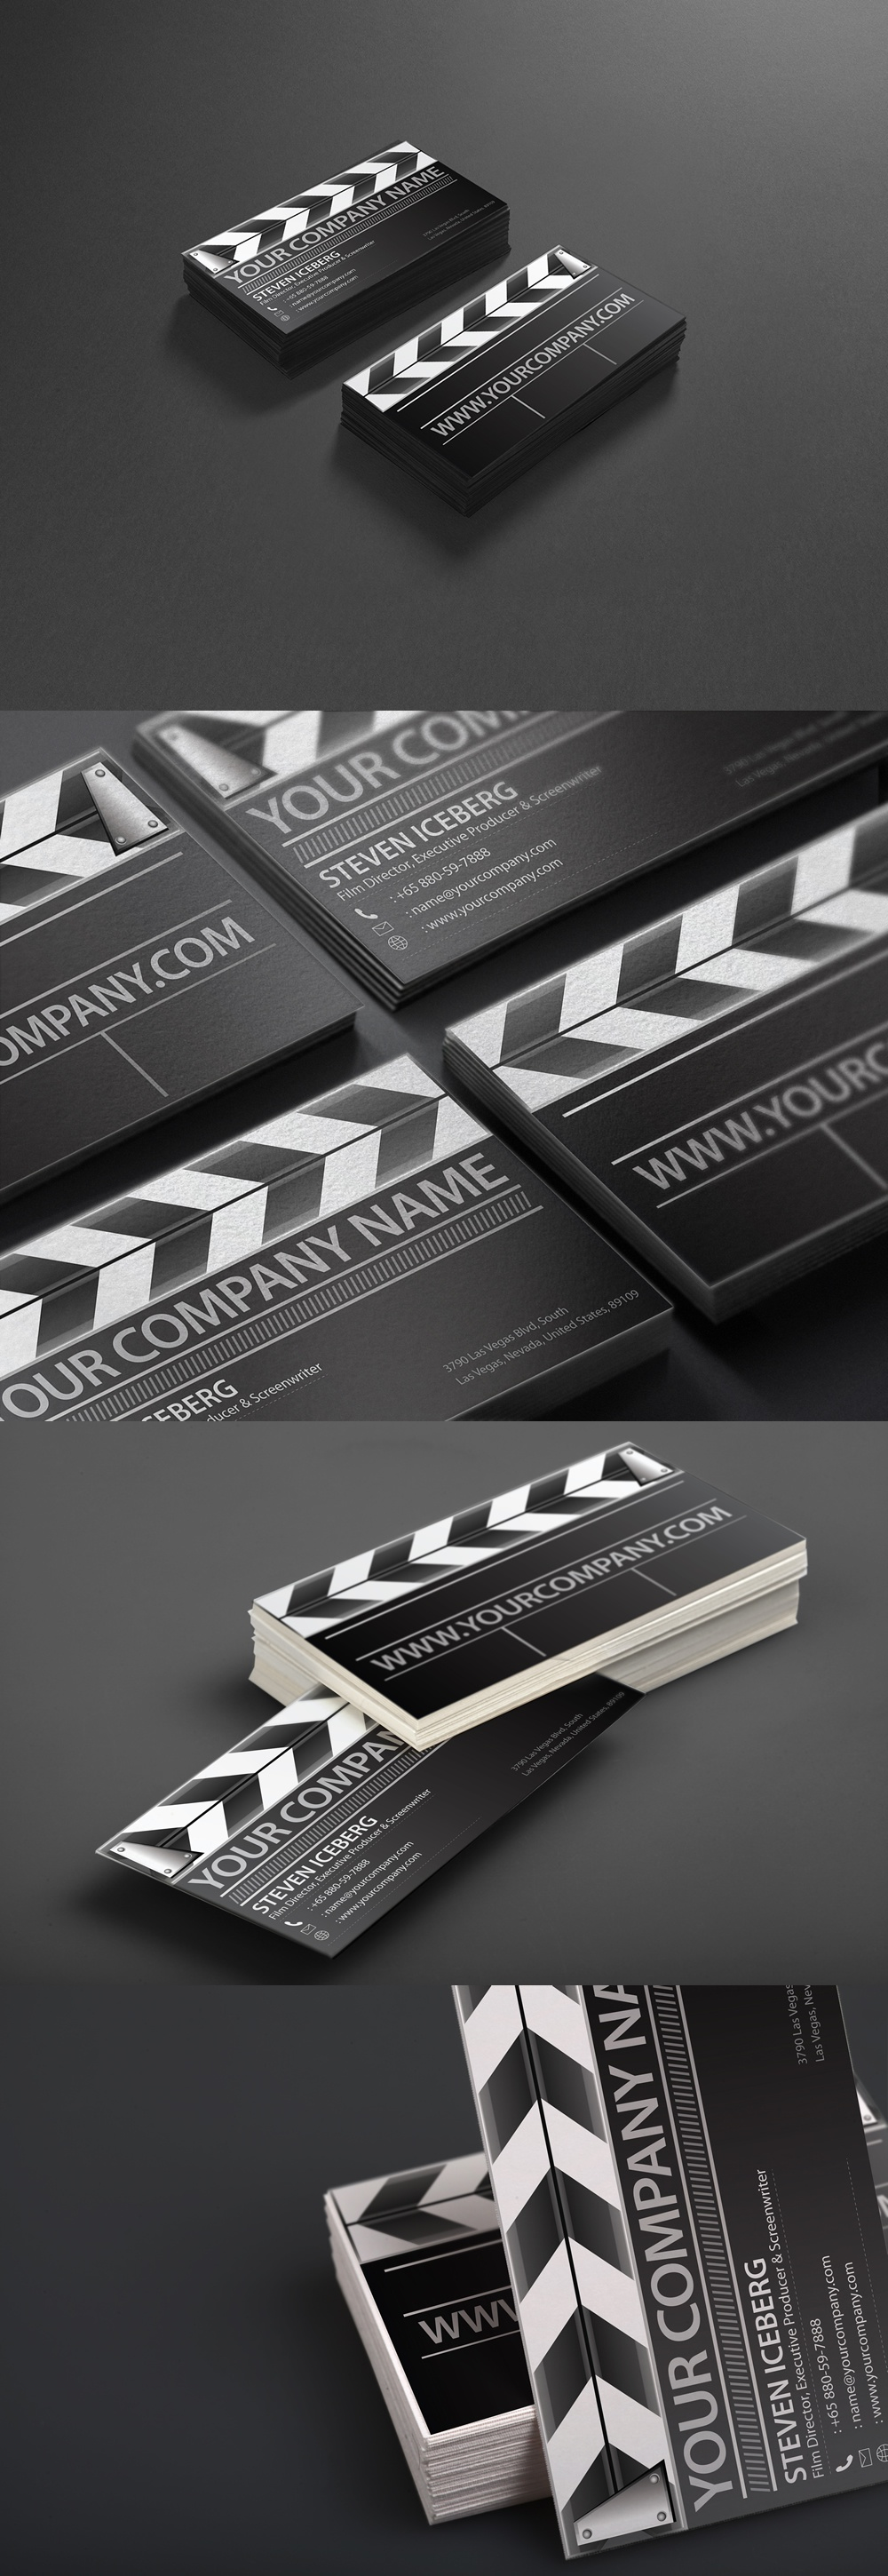 Dribbble film director business card design dribbbleg by film director business card design dribbble reheart Images